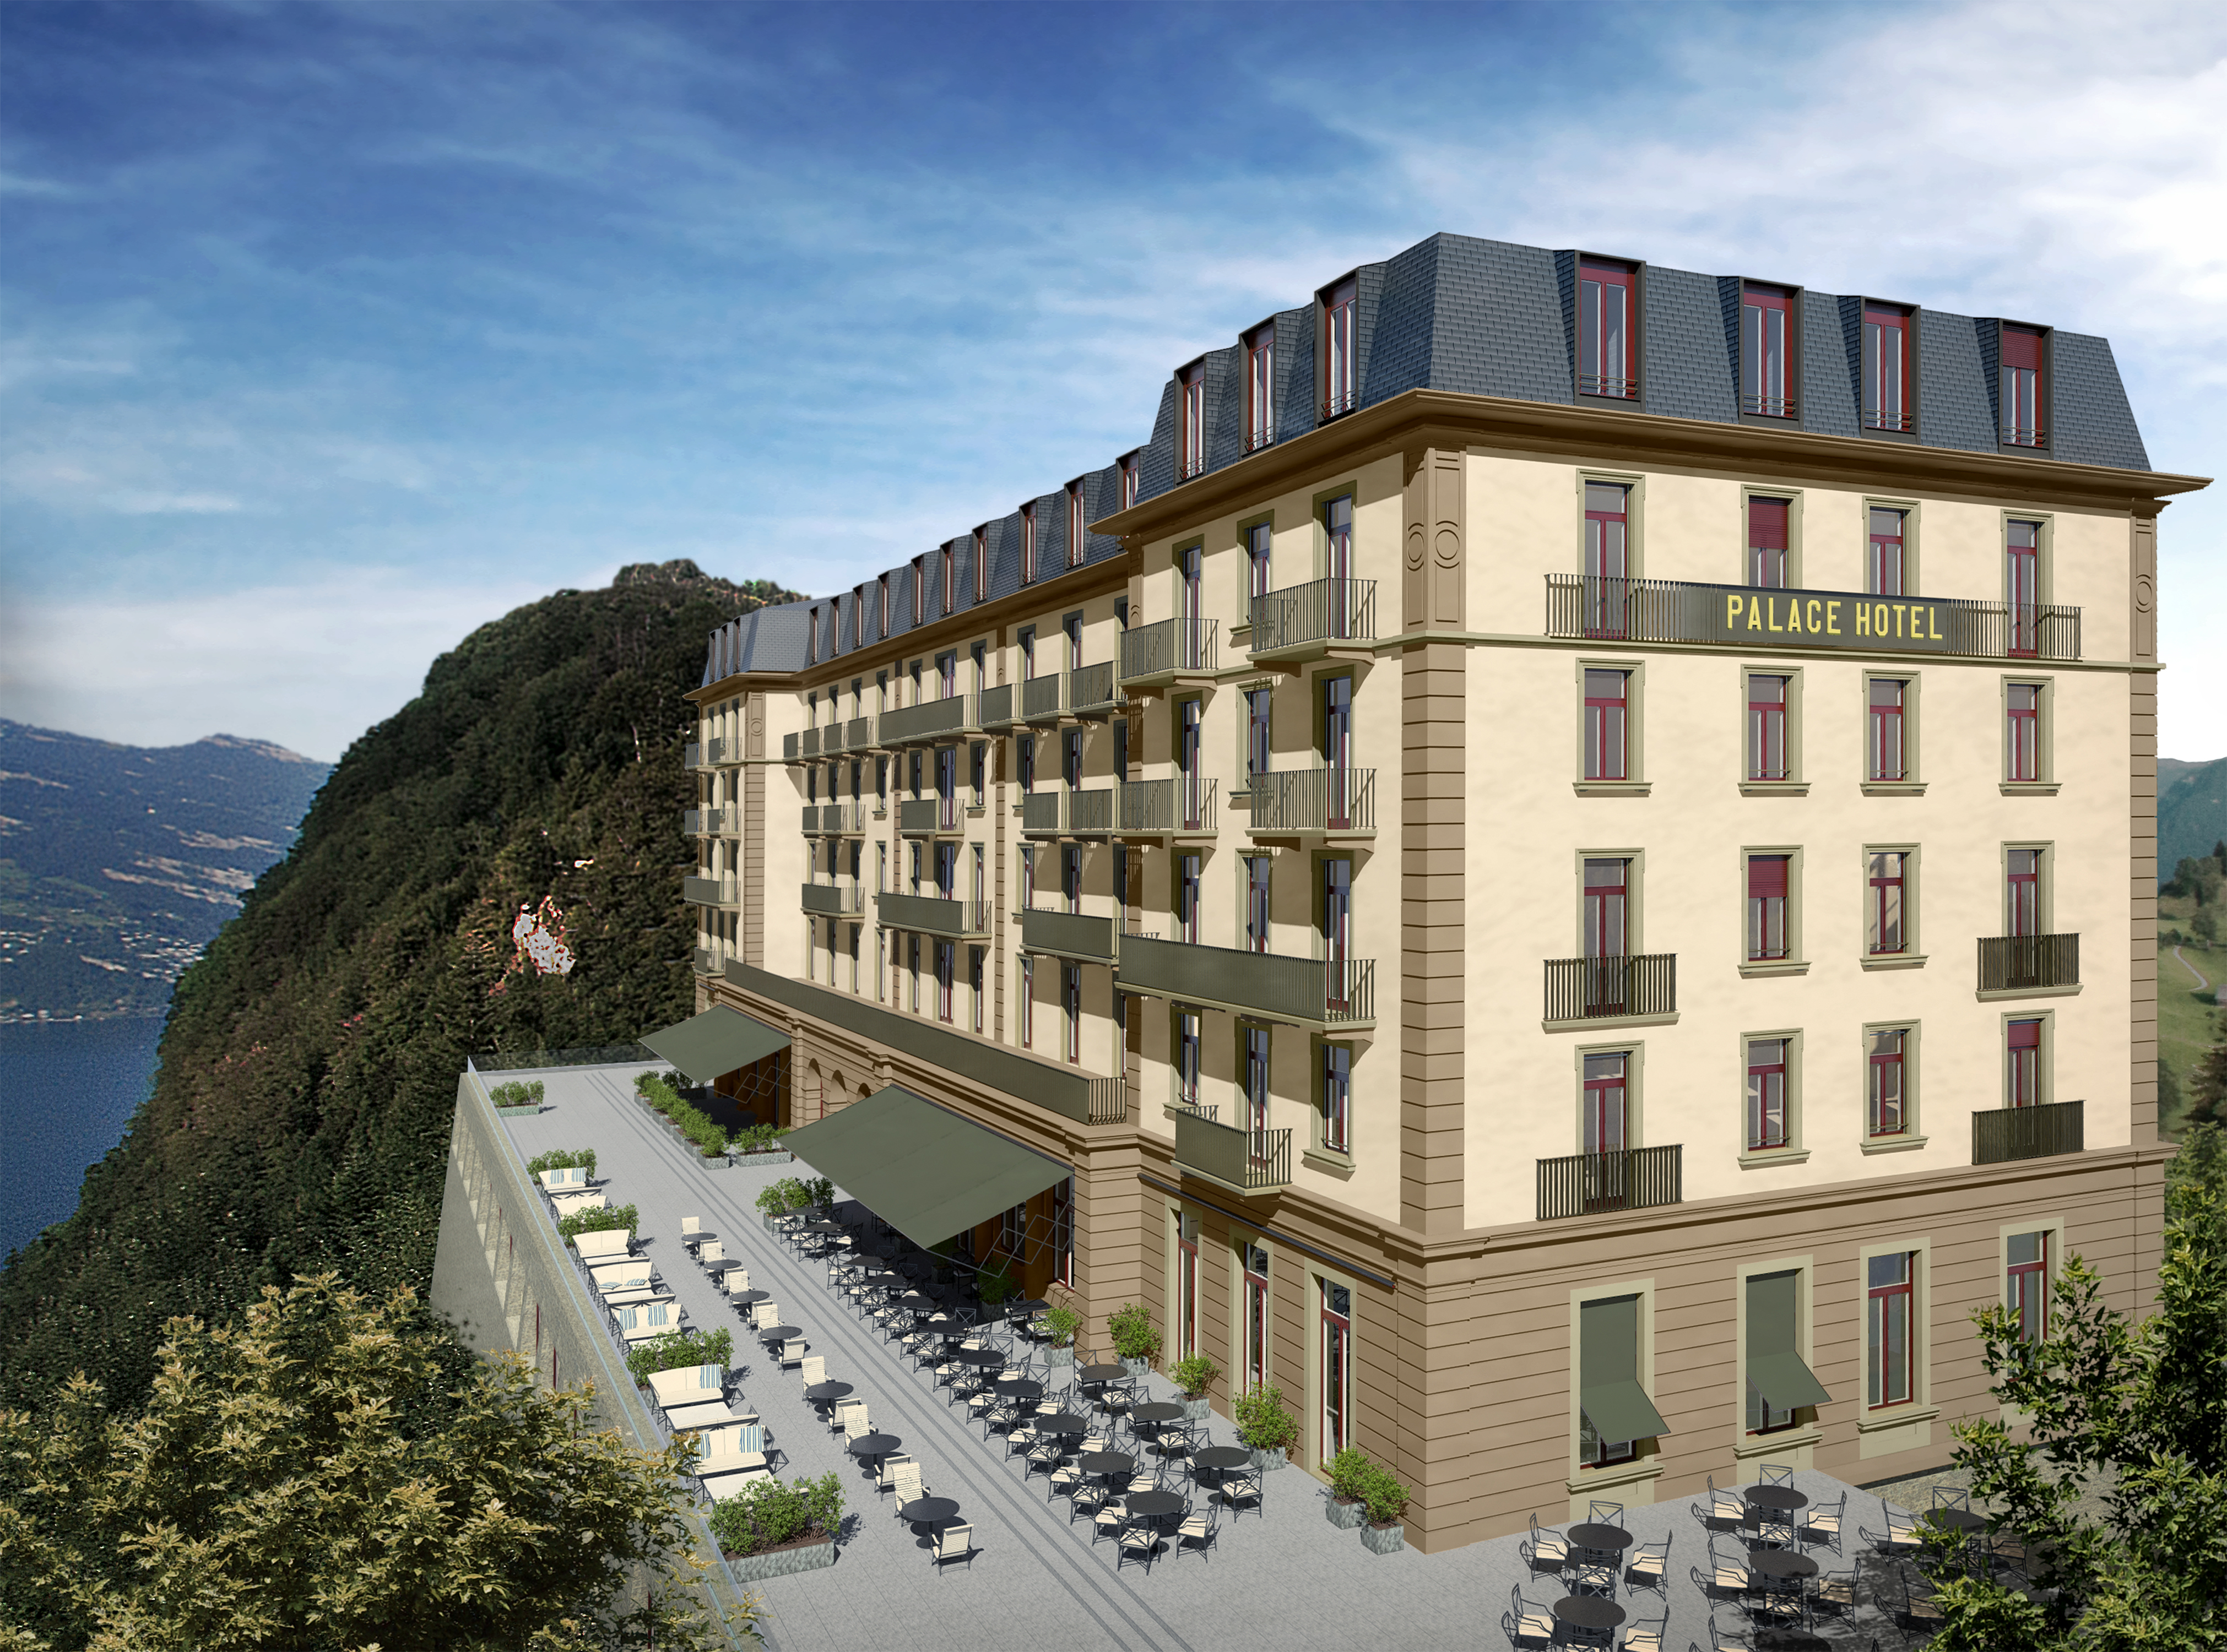 Palace hotel to open in june at b rgenstock resort for Hotel palace